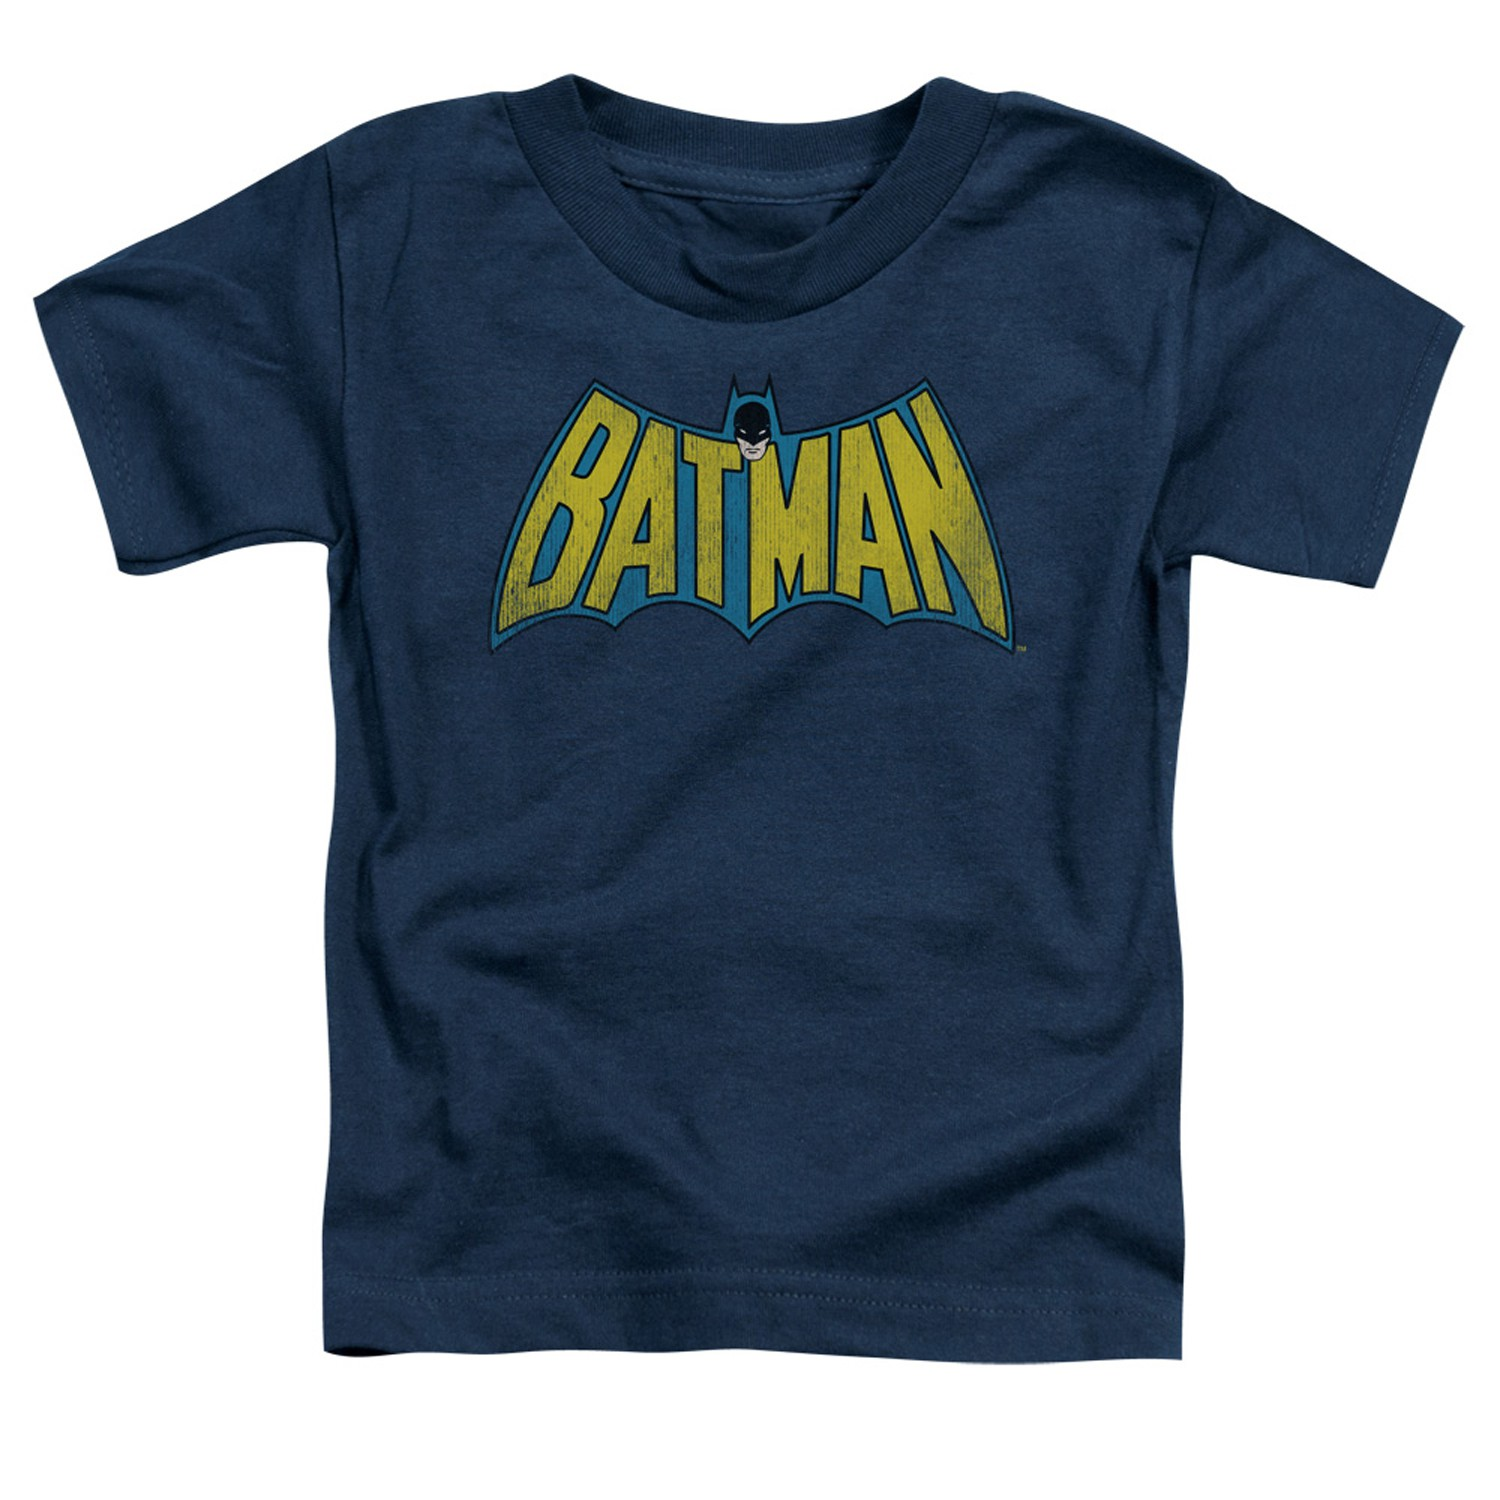 Batman Vintage Logo Toddlers Tshirt